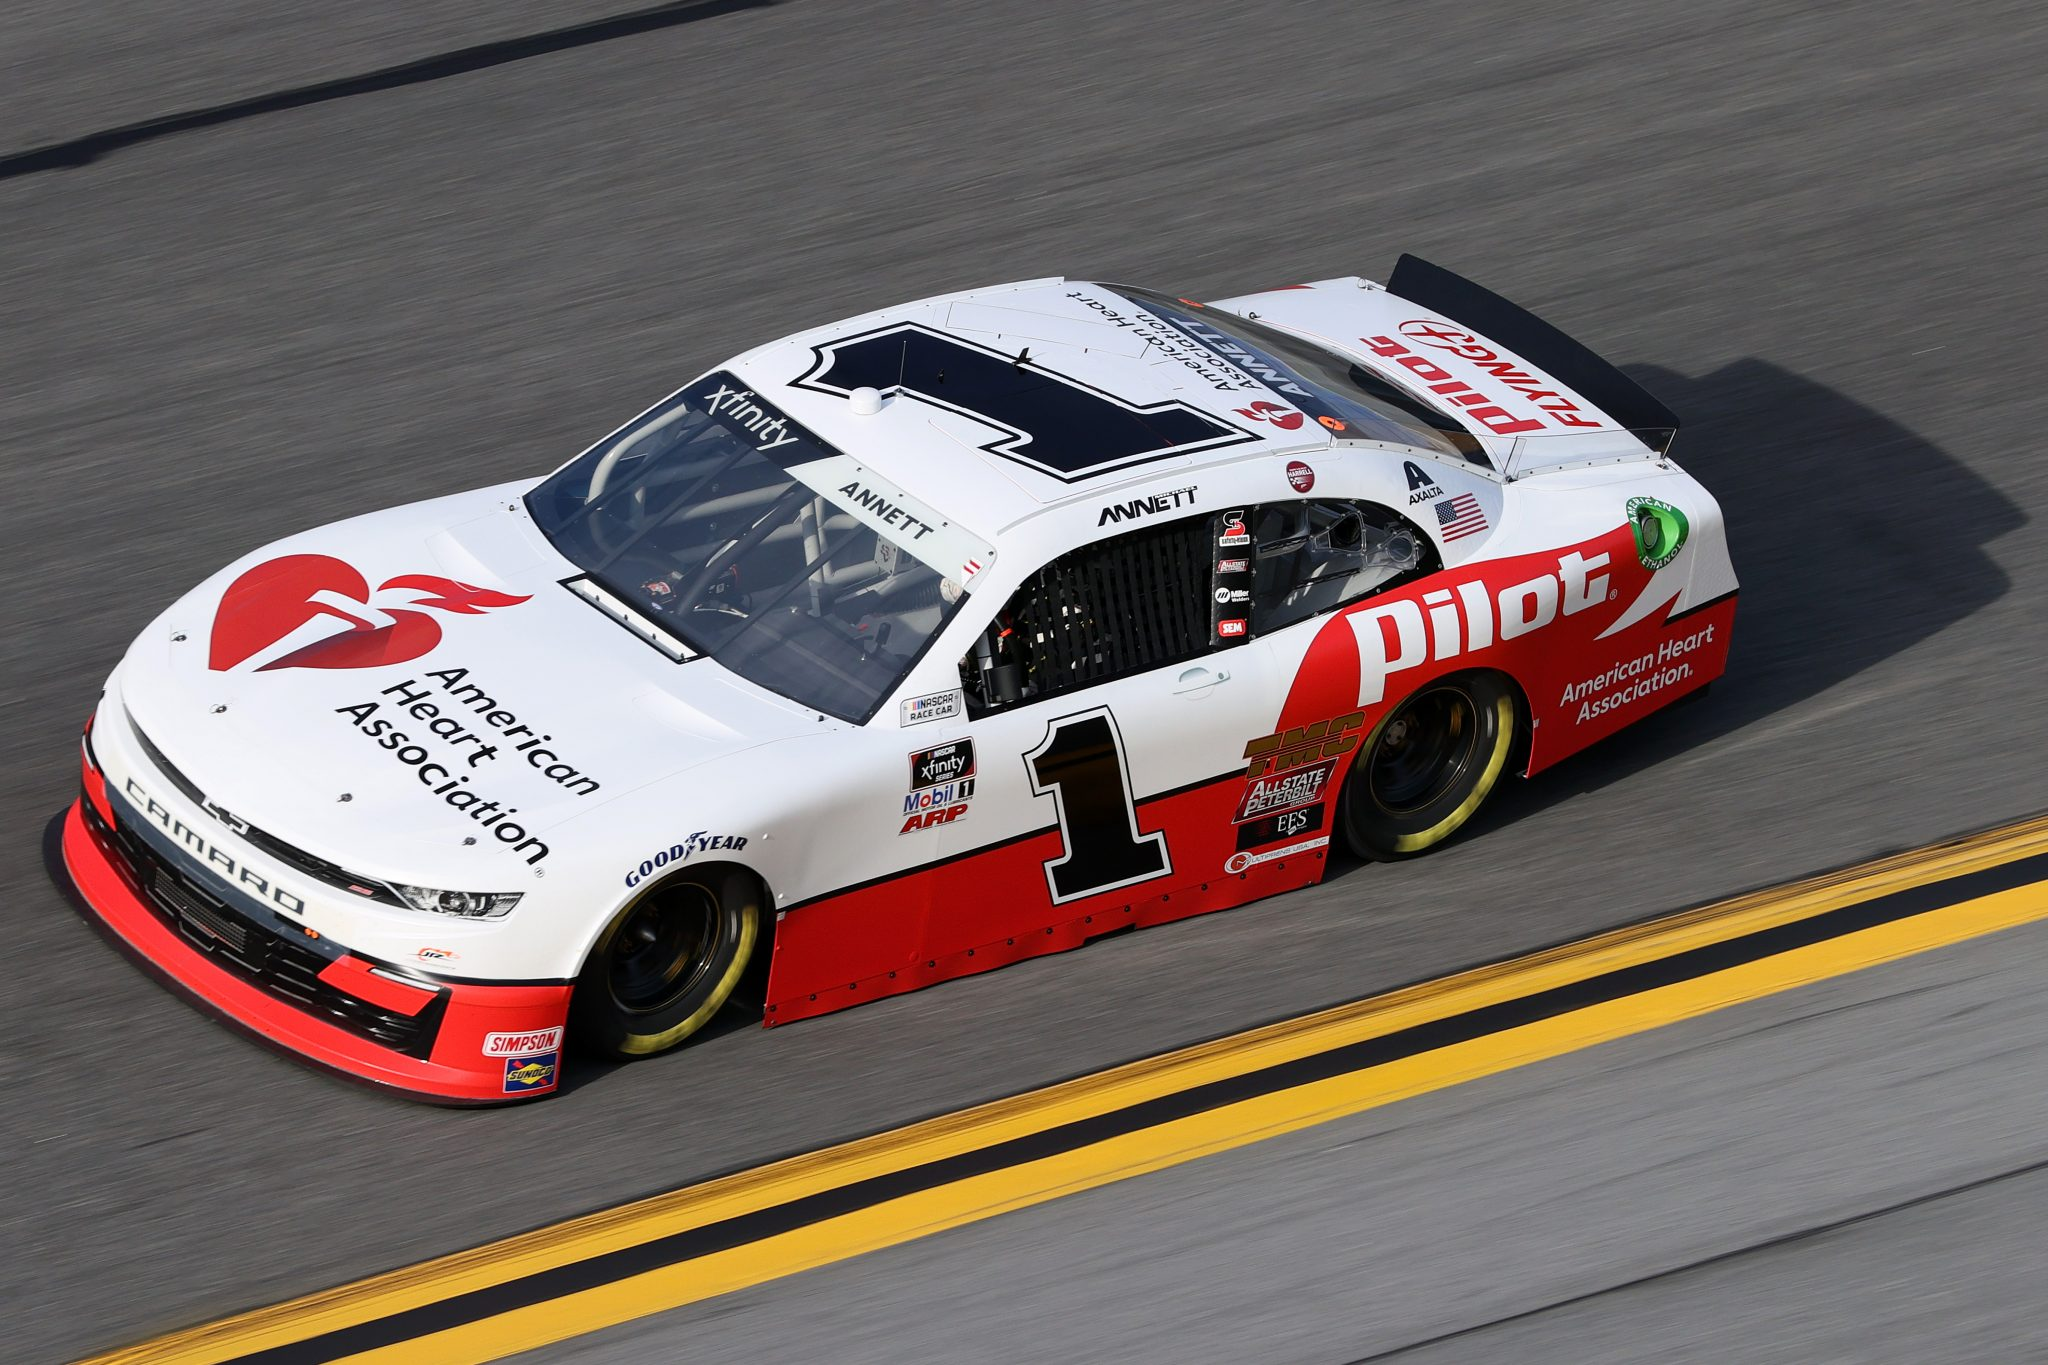 DAYTONA BEACH, FLORIDA - FEBRUARY 12: Michael Annett, driver of the #1 PFJ American Heart Association Chevrolet, practices for the NASCAR Xfinity Series Beef. It's What's For Dinner. 300 at Daytona International Speedway on February 12, 2021 in Daytona Beach, Florida. (Photo by James Gilbert/Getty Images) | Getty Images